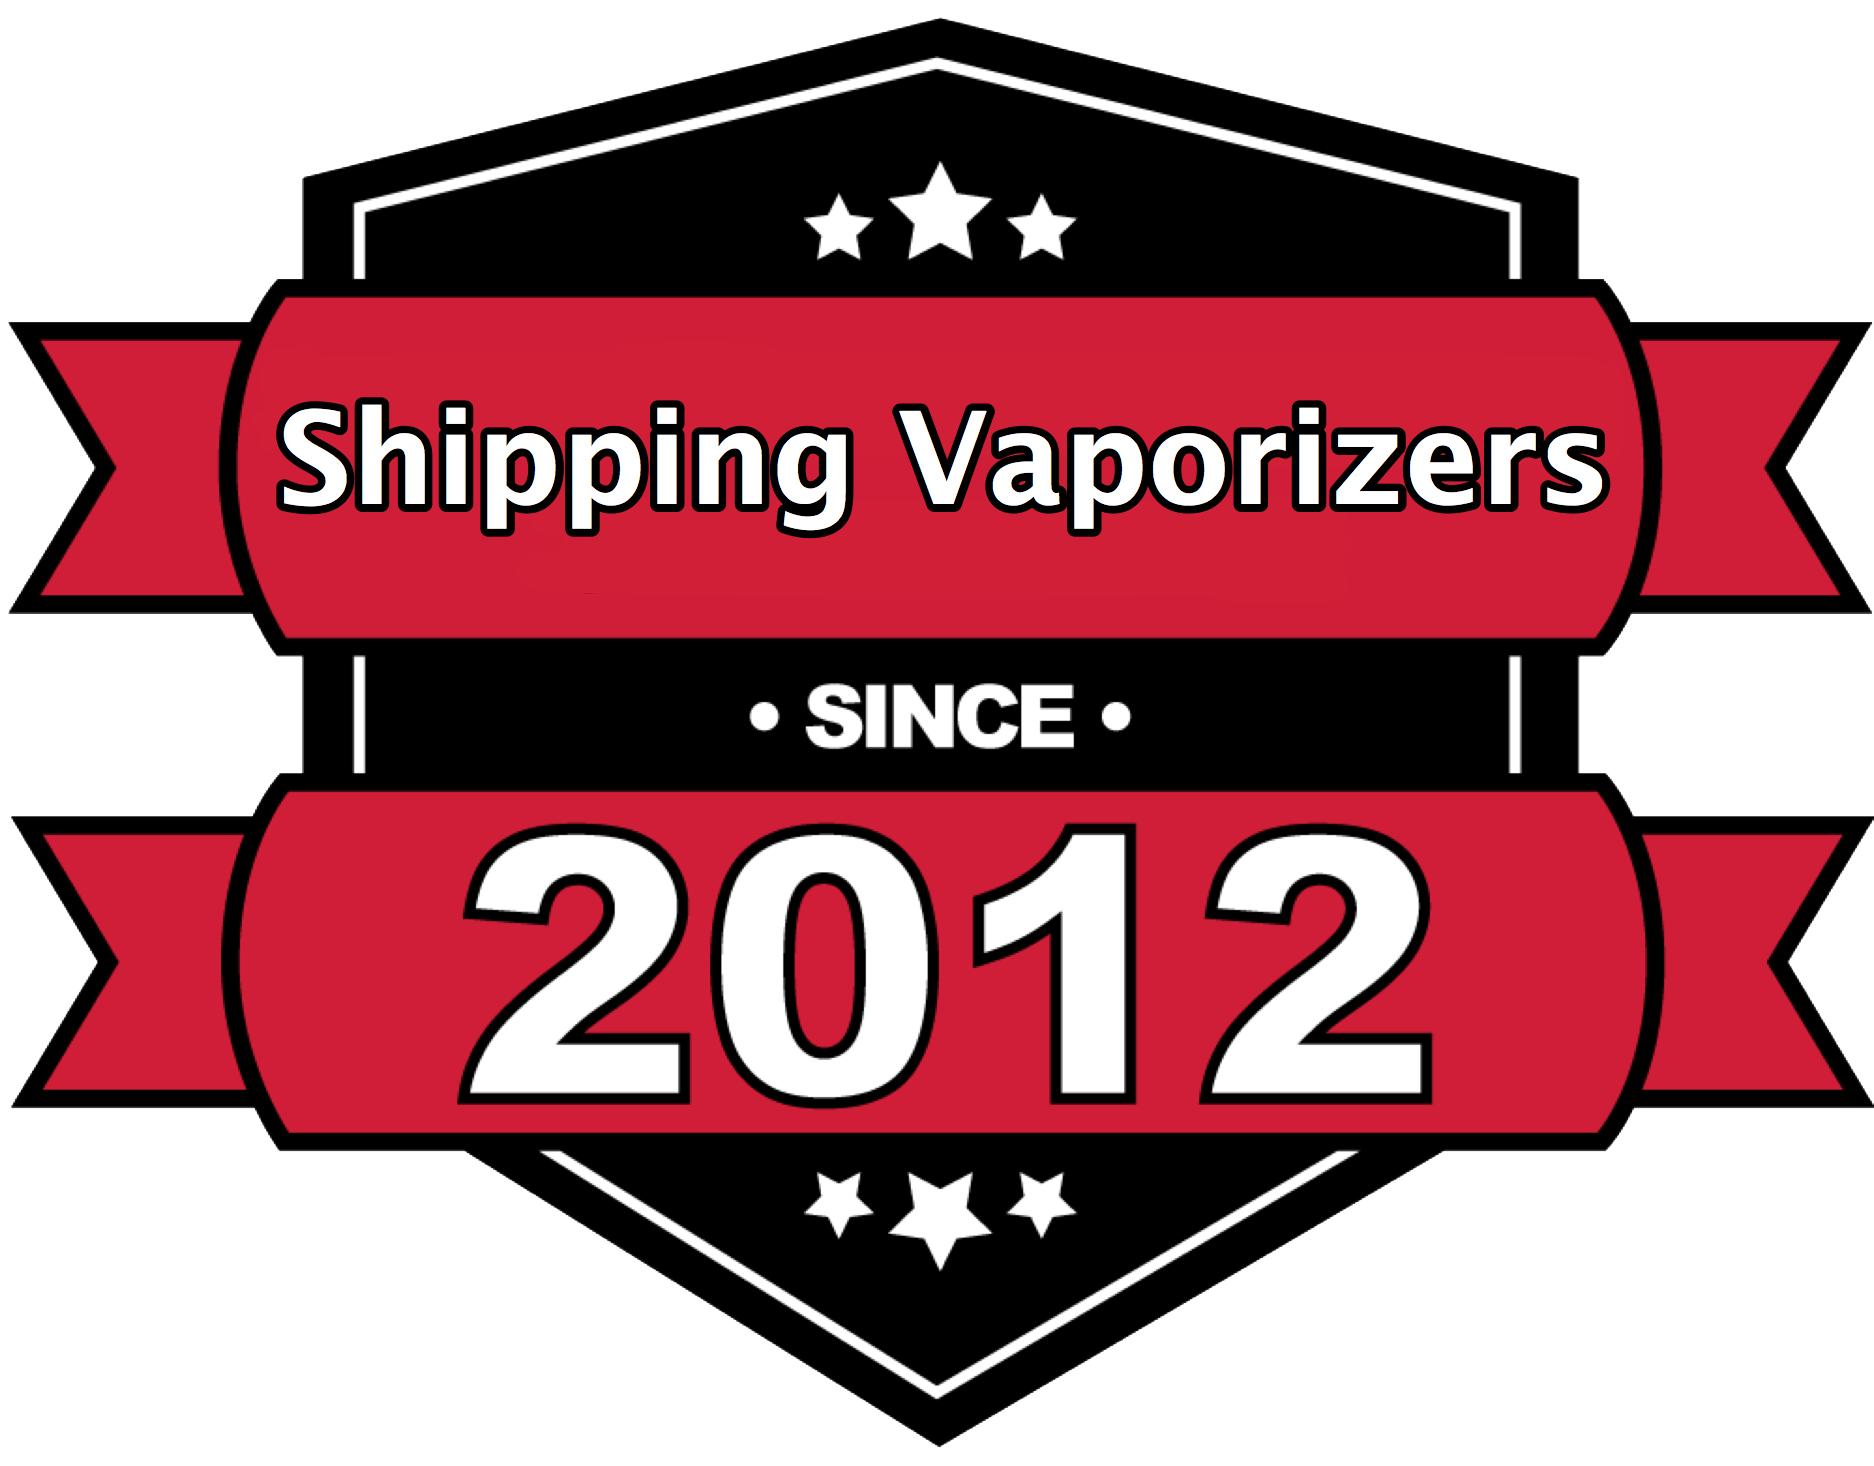 shipping vaporizers since 2012